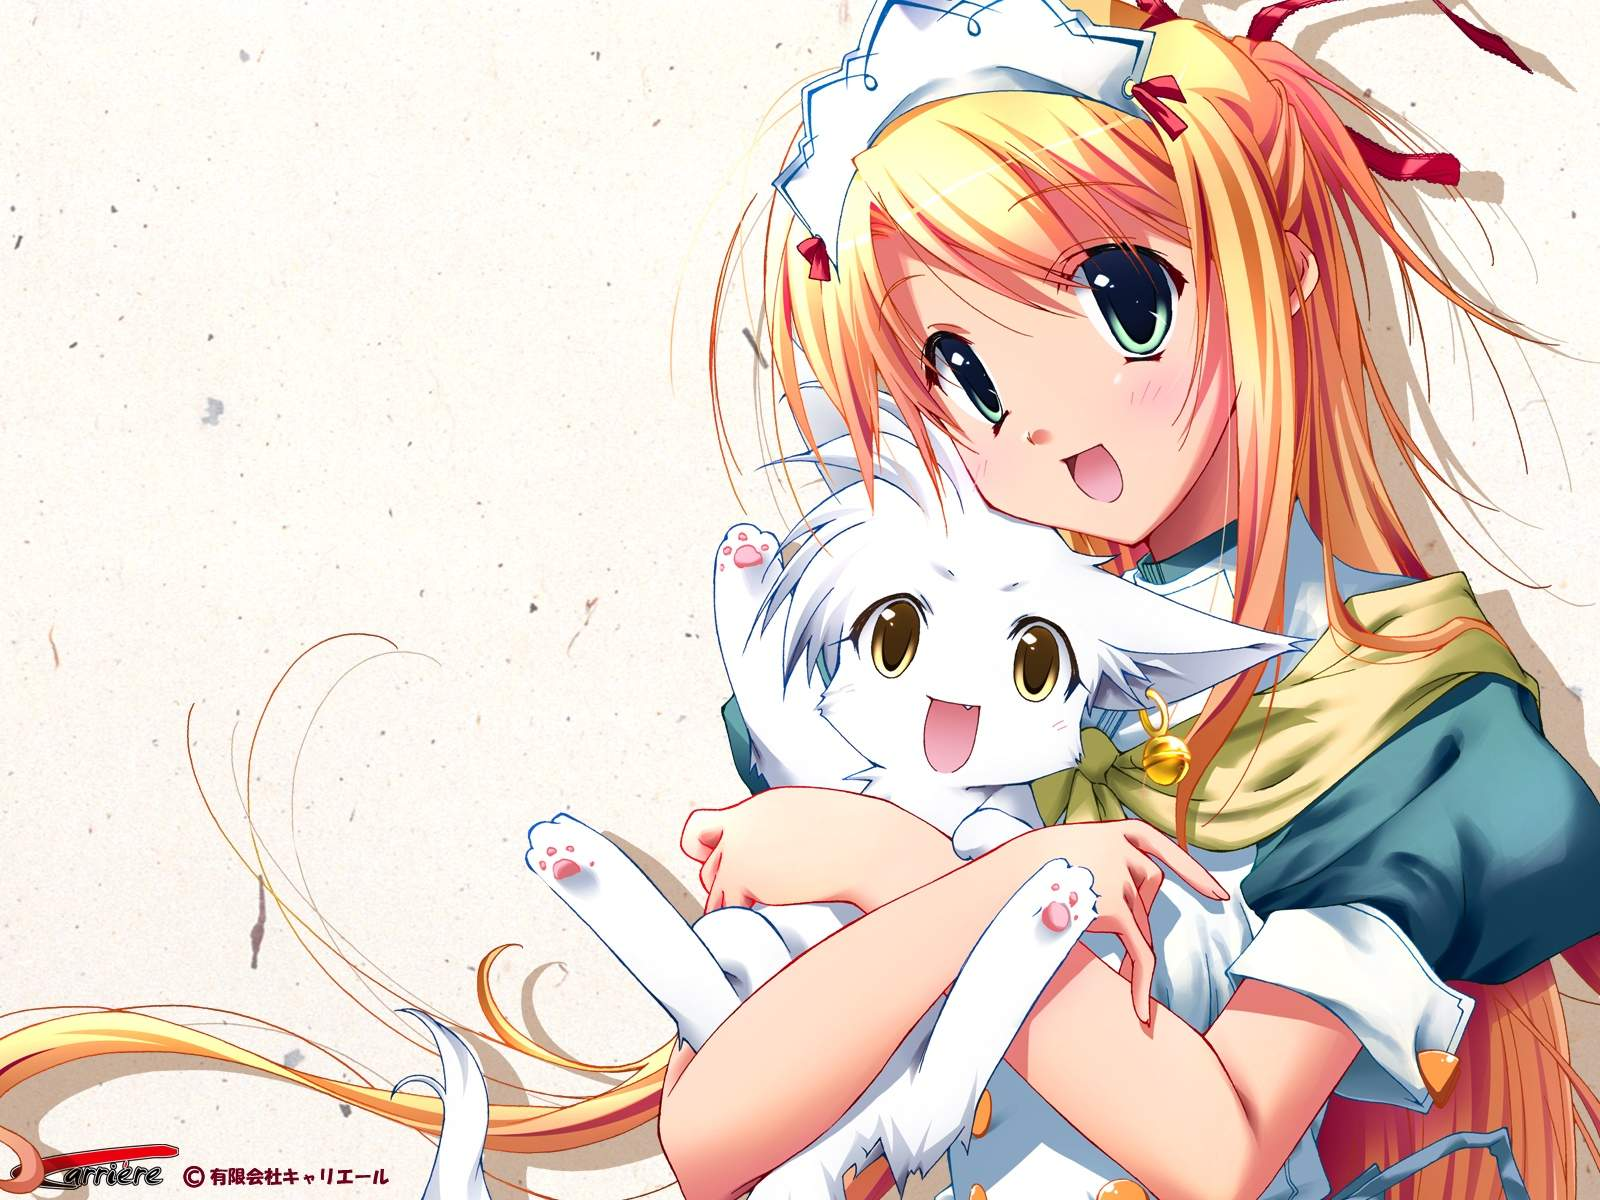 http://animewallpaperhq.blogspot.com/2011/08/anime-wallpaper-9.html